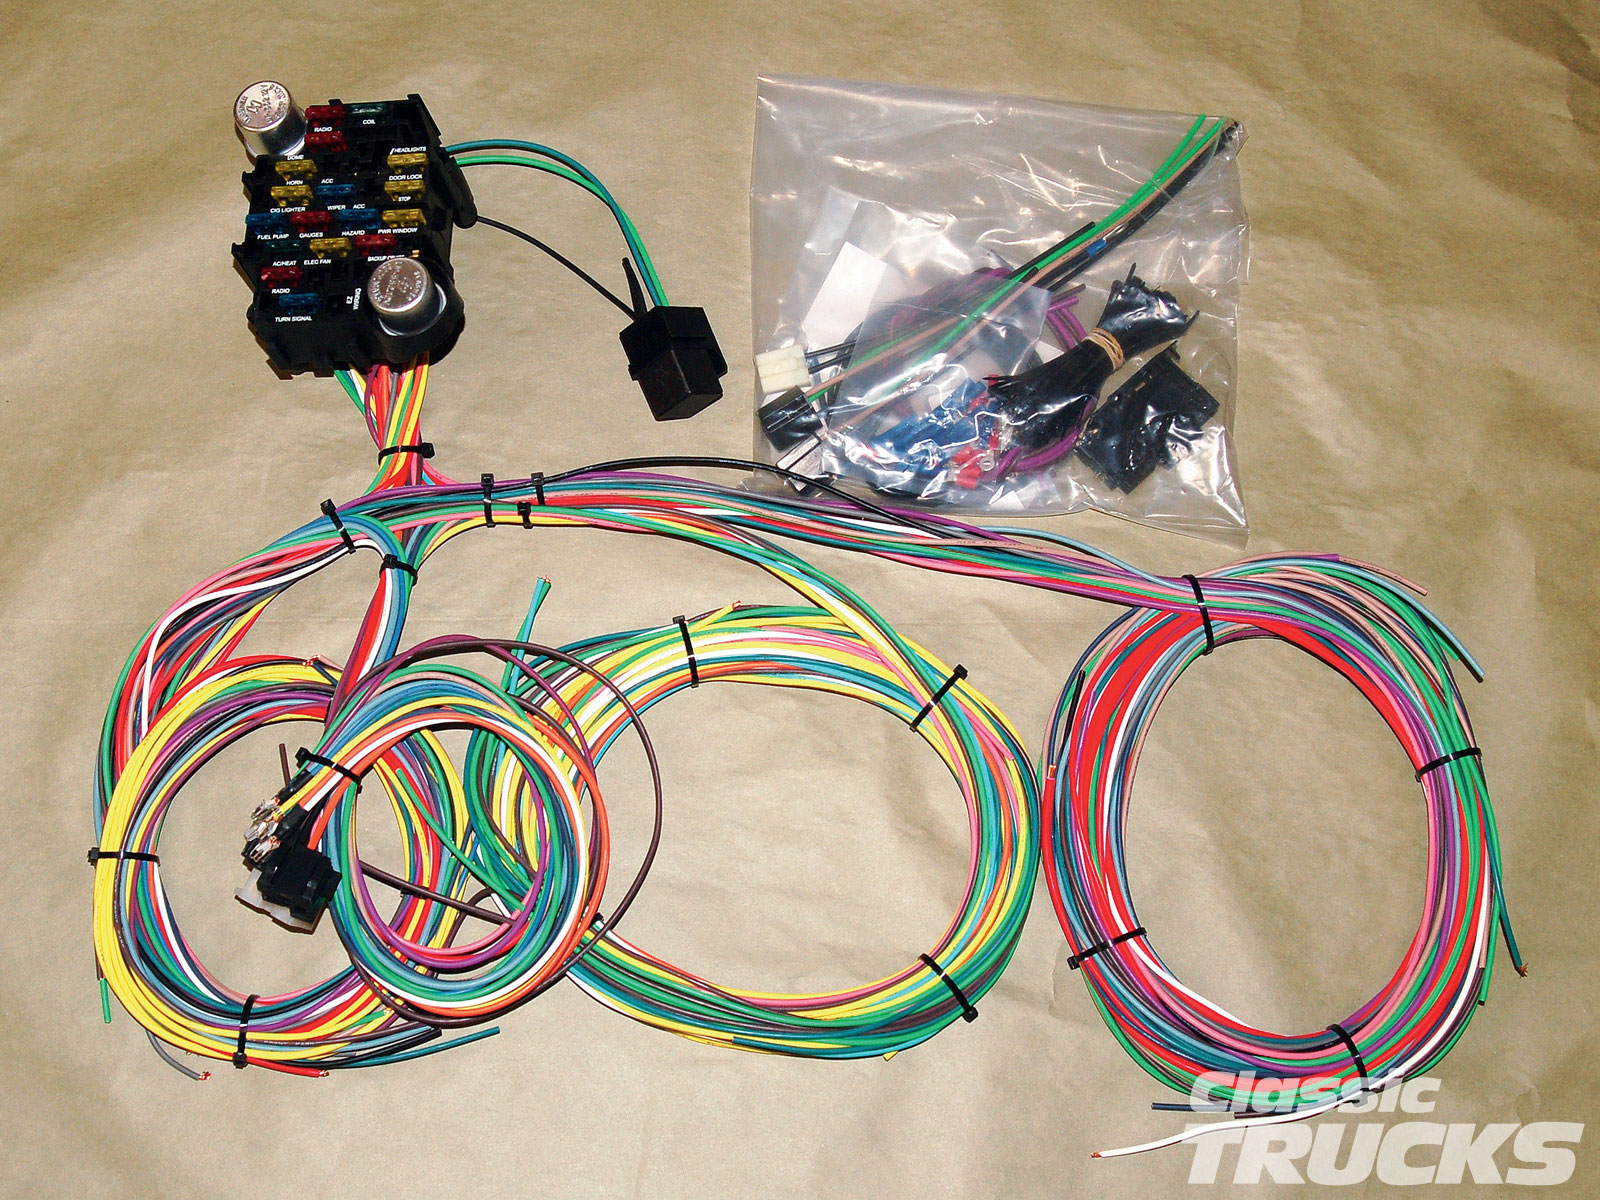 1010clt 02 o aftermarket wiring harness install kit?resize=640%2C480 how much does a wire harness cost to replace hobbiesxstyle how much does it cost to replace a wiring harness at creativeand.co